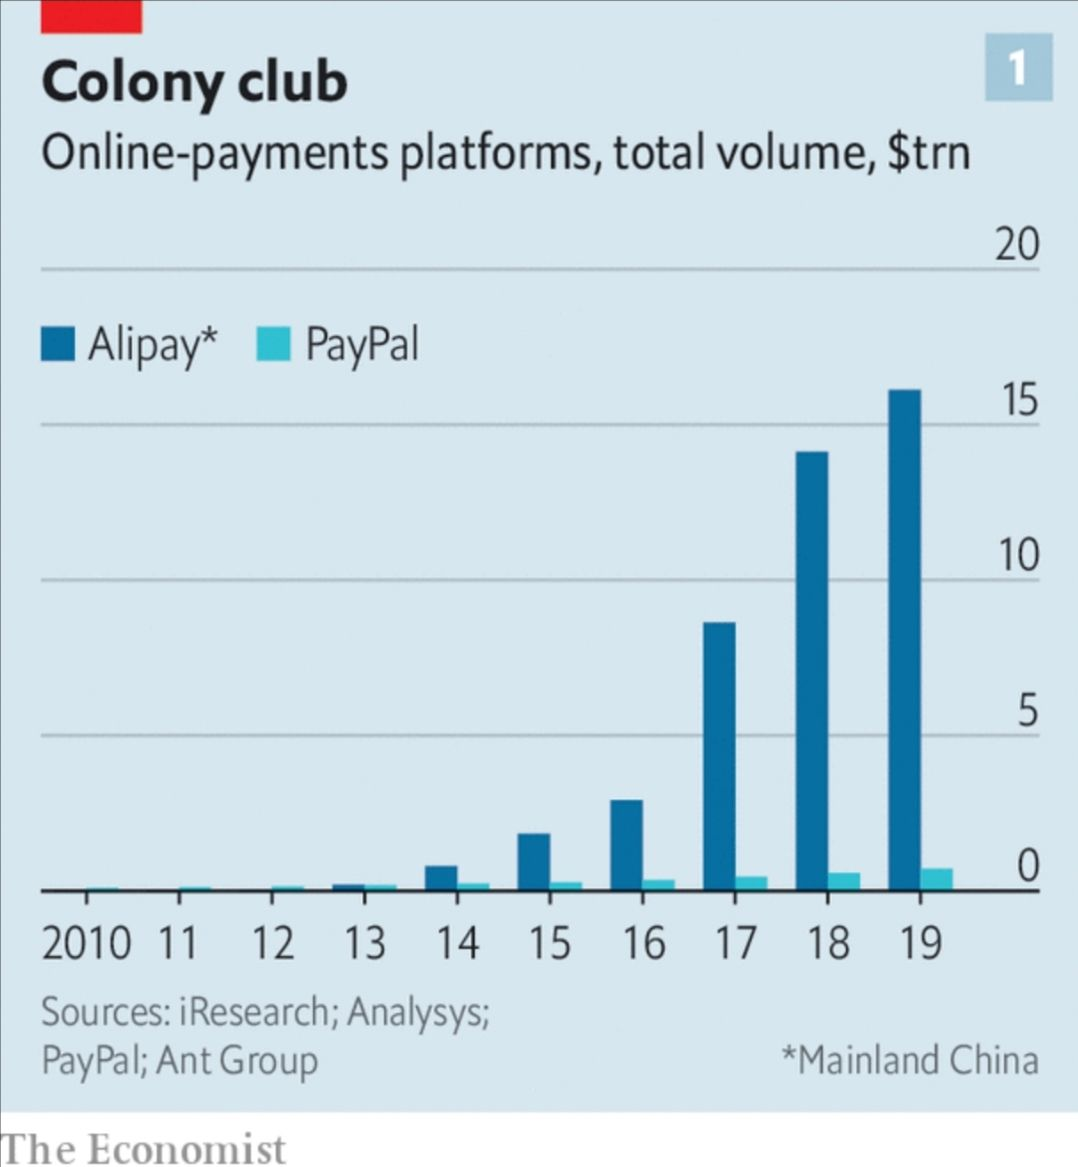 Total volumes (in $ trillion) for Alipay vs. Paypal